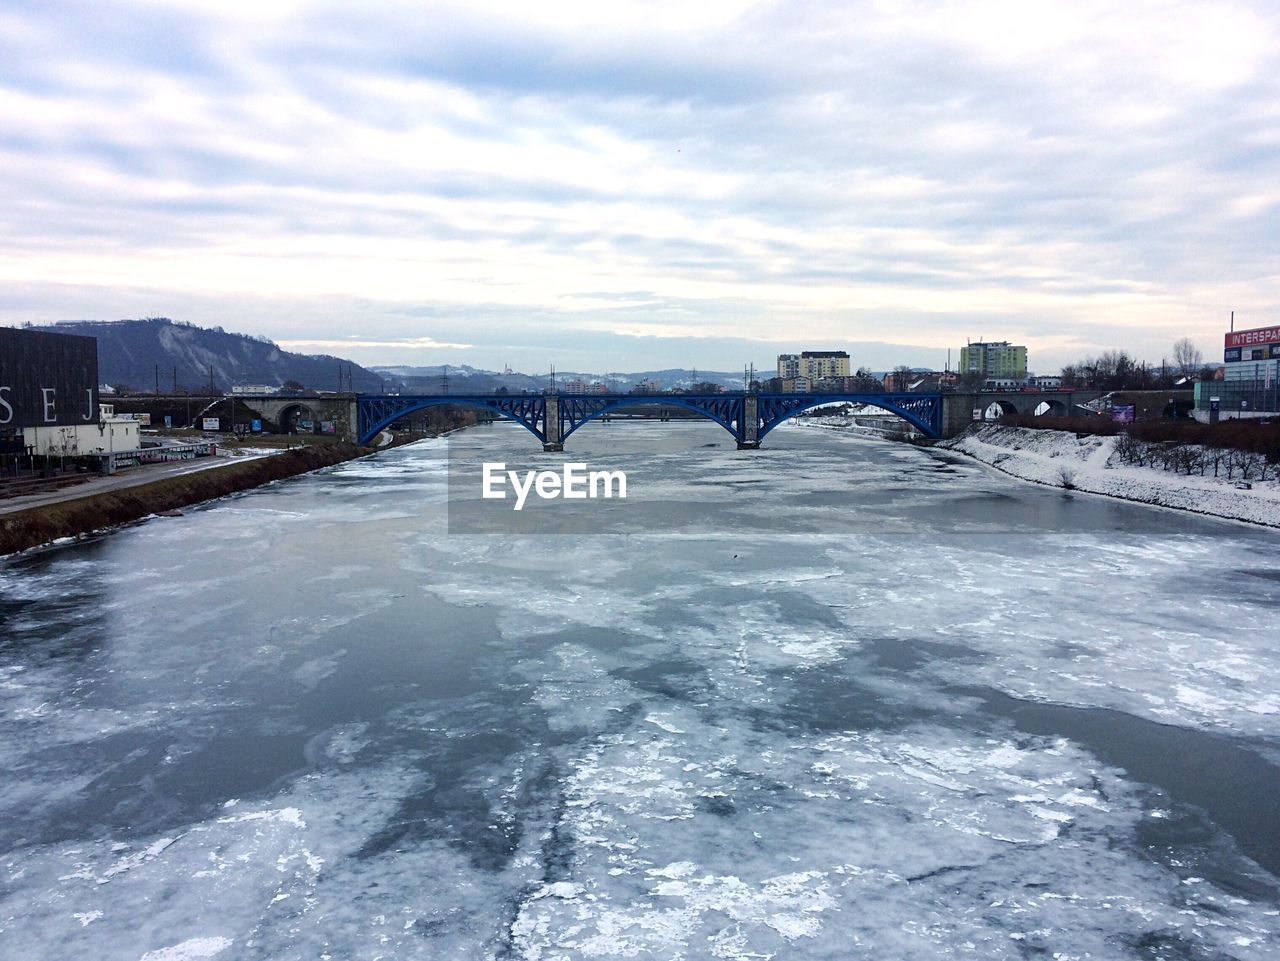 bridge - man made structure, connection, sky, winter, architecture, built structure, river, cloud - sky, cold temperature, weather, snow, water, outdoors, ice, transportation, city, day, bridge, waterfront, no people, nature, cityscape, scenics, building exterior